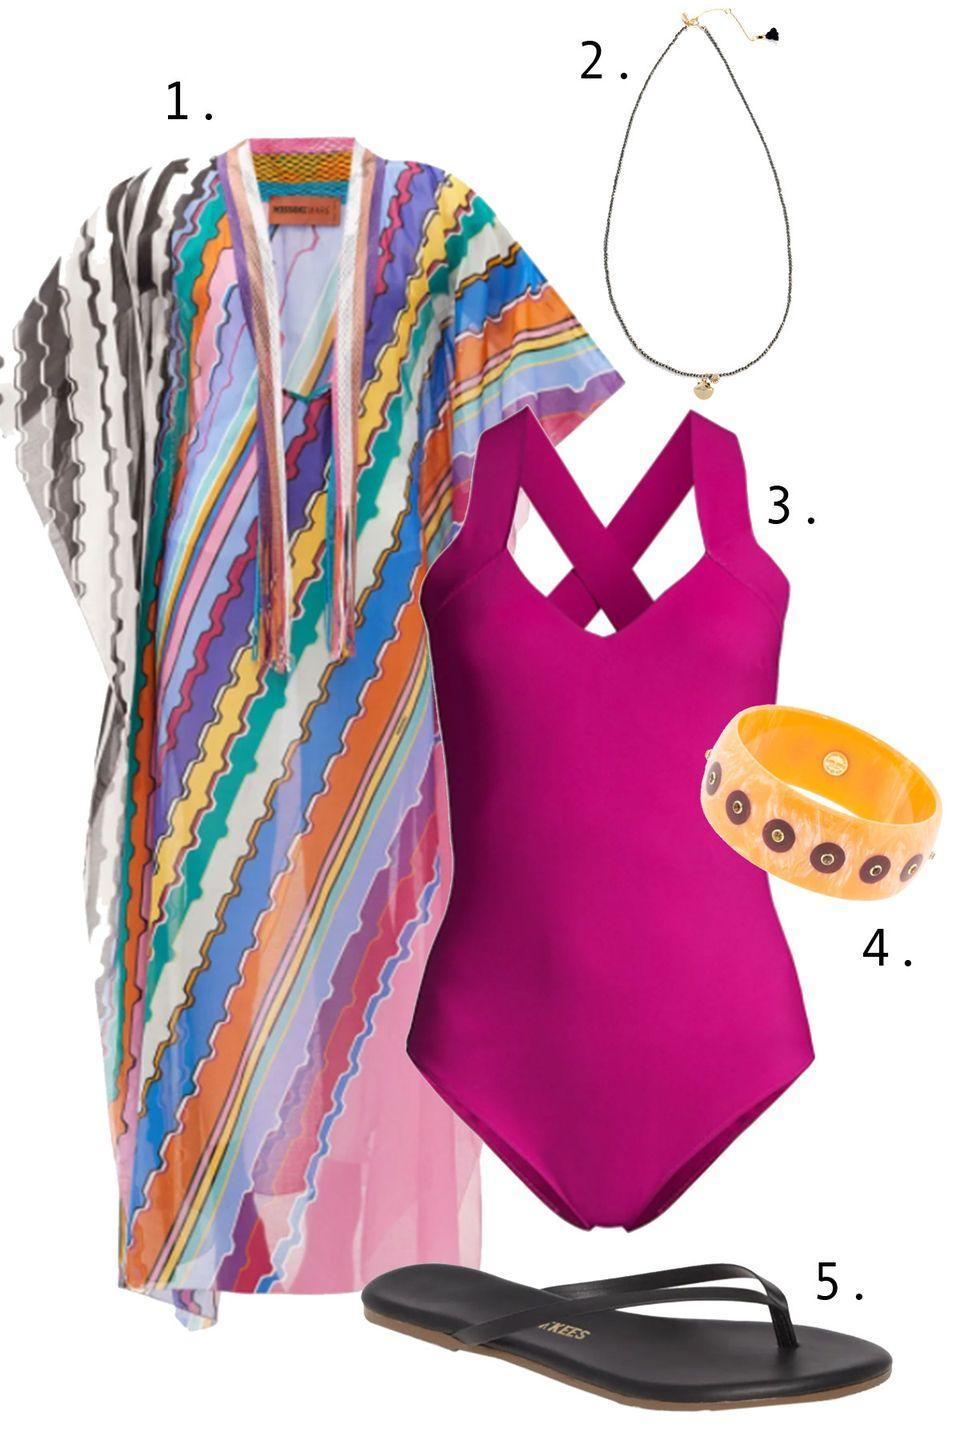 """<p>Let's face facts: a caftan will never be a bad option when it comes to poolside dressing—especially with a one-piece. Pick a roomie coverup with a pattern whose colors echo the hue of your maillot. Then, add a piece of jewelry and simple flips. Chic and easy, which is how we like it!</p><ol><li><a href=""""https://go.skimresources.com?id=74968X1525087&xs=1&url=https%3A%2F%2Fwww.matchesfashion.com%2Fus%2Fproducts%2FMissoni-Mare-V-neck-striped-cotton-voile-kaftan-1400588"""" rel=""""nofollow noopener"""" target=""""_blank"""" data-ylk=""""slk:Missoni Mare kaftan"""" class=""""link rapid-noclick-resp"""">Missoni Mare kaftan</a> 2. <a href=""""https://go.skimresources.com?id=74968X1525087&xs=1&url=https%3A%2F%2Fmaison-de-mode.com%2Fproducts%2Fblack-label-pyrite-bracelet"""" rel=""""nofollow noopener"""" target=""""_blank"""" data-ylk=""""slk:Shashi necklace"""" class=""""link rapid-noclick-resp"""">Shashi necklace</a> 3. <a href=""""https://go.skimresources.com?id=74968X1525087&xs=1&url=https%3A%2F%2Fwww.saksfifthavenue.com%2Fproduct%2Fchiara-boni-la-petite-robe-bine-crisscross-one-piece-swimsuit-0400013514828.html%3Fdwvar_0400013514828_color%3DCYCLAMEN"""" rel=""""nofollow noopener"""" target=""""_blank"""" data-ylk=""""slk:Chiara Boni La Petite Robe swim"""" class=""""link rapid-noclick-resp"""">Chiara Boni La Petite Robe swim</a> 4. <a href=""""https://go.skimresources.com?id=74968X1525087&xs=1&url=https%3A%2F%2Fwww.farfetch.com%2Fshopping%2Fwomen%2Fmark-davis-18kt-gold-bakelite-bangle-bracelet-item-15425476.aspx%3Fstoreid%3D9512"""" rel=""""nofollow noopener"""" target=""""_blank"""" data-ylk=""""slk:Mark Davis bangle"""" class=""""link rapid-noclick-resp"""">Mark Davis bangle</a> 5. <a href=""""https://go.skimresources.com?id=74968X1525087&xs=1&url=https%3A%2F%2Fwww.nordstrom.com%2Fs%2Ftkees-liners-flip-flop%2F3528227%3Forigin%3Dcategory-personalizedsort%26breadcrumb%3DHome%252FWomen%252FShoes%252FSandals%26fashioncolor%3DBlack%26color%3D001"""" rel=""""nofollow noopener"""" target=""""_blank"""" data-ylk=""""slk:Tkees sandals"""" class=""""link rapid-noclick-resp"""">Tkees sandals</a></li></ol>"""